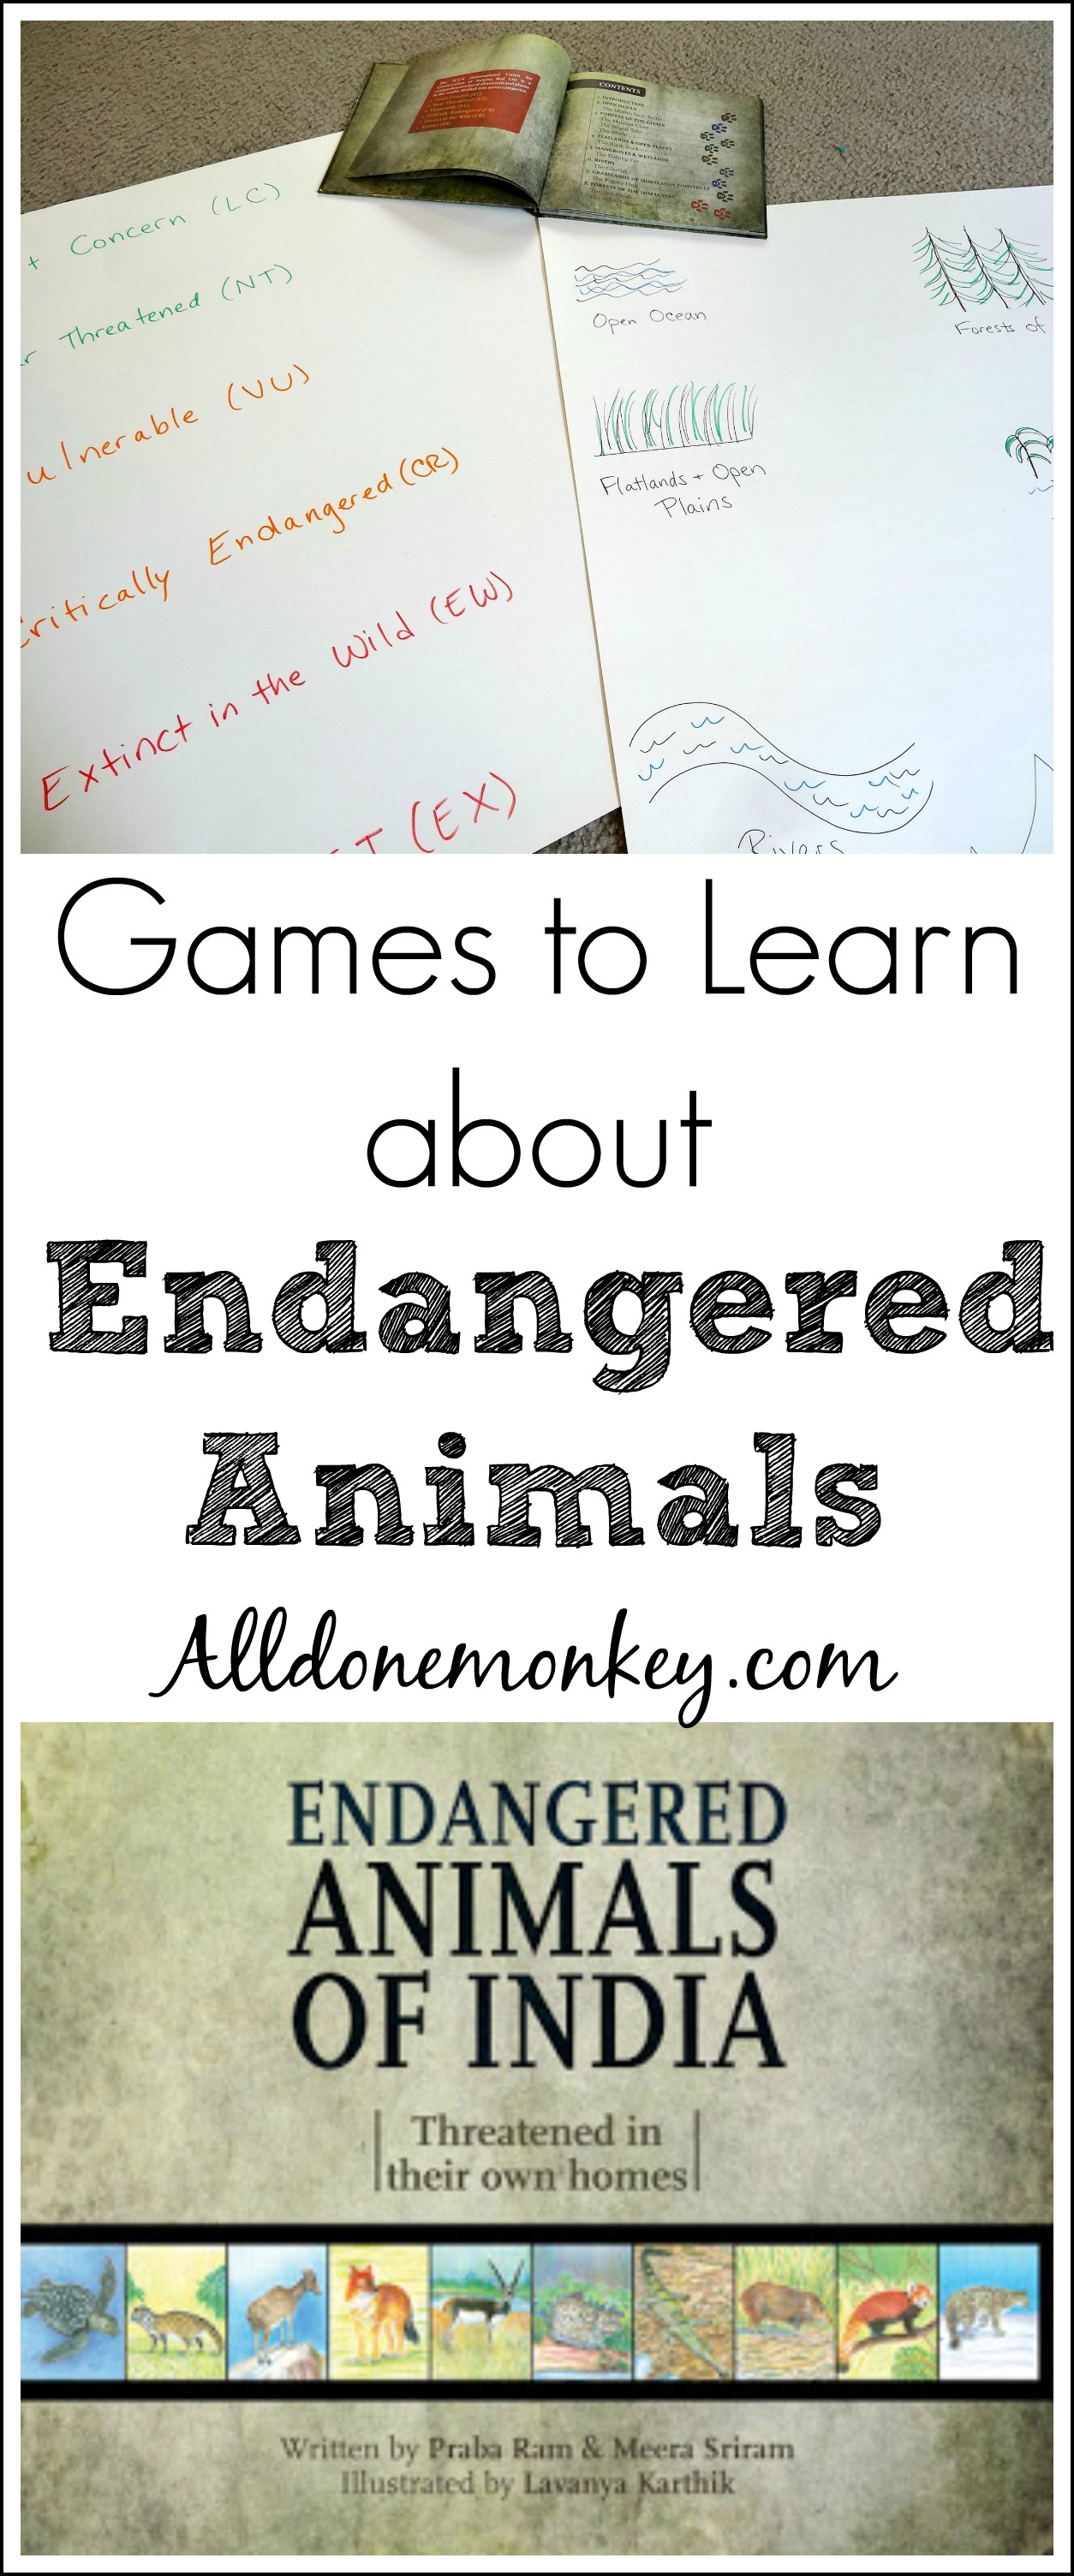 India: Games to Learn about Endangered Animals | Alldonemonkey.com